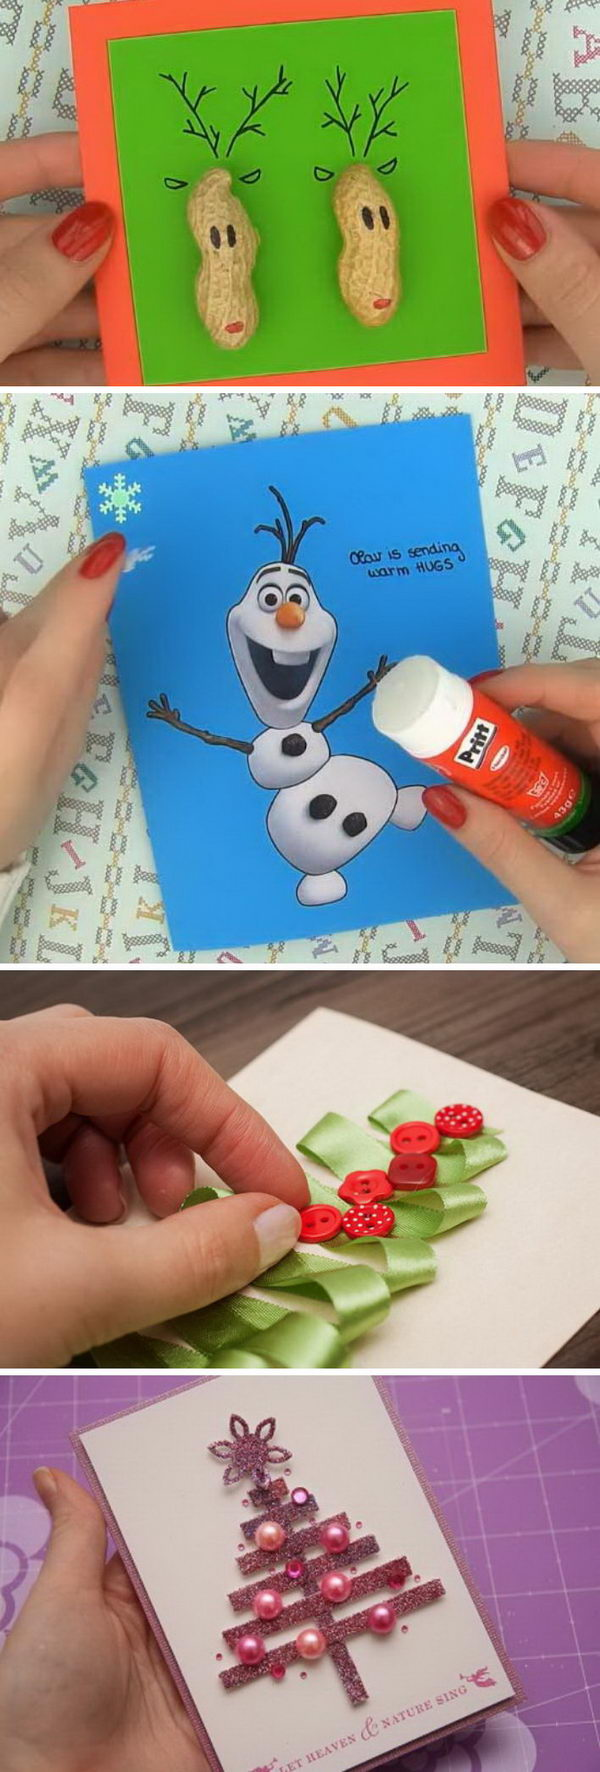 DIY Ideas and Tutorials to Create Your Very Own Christmas Card.